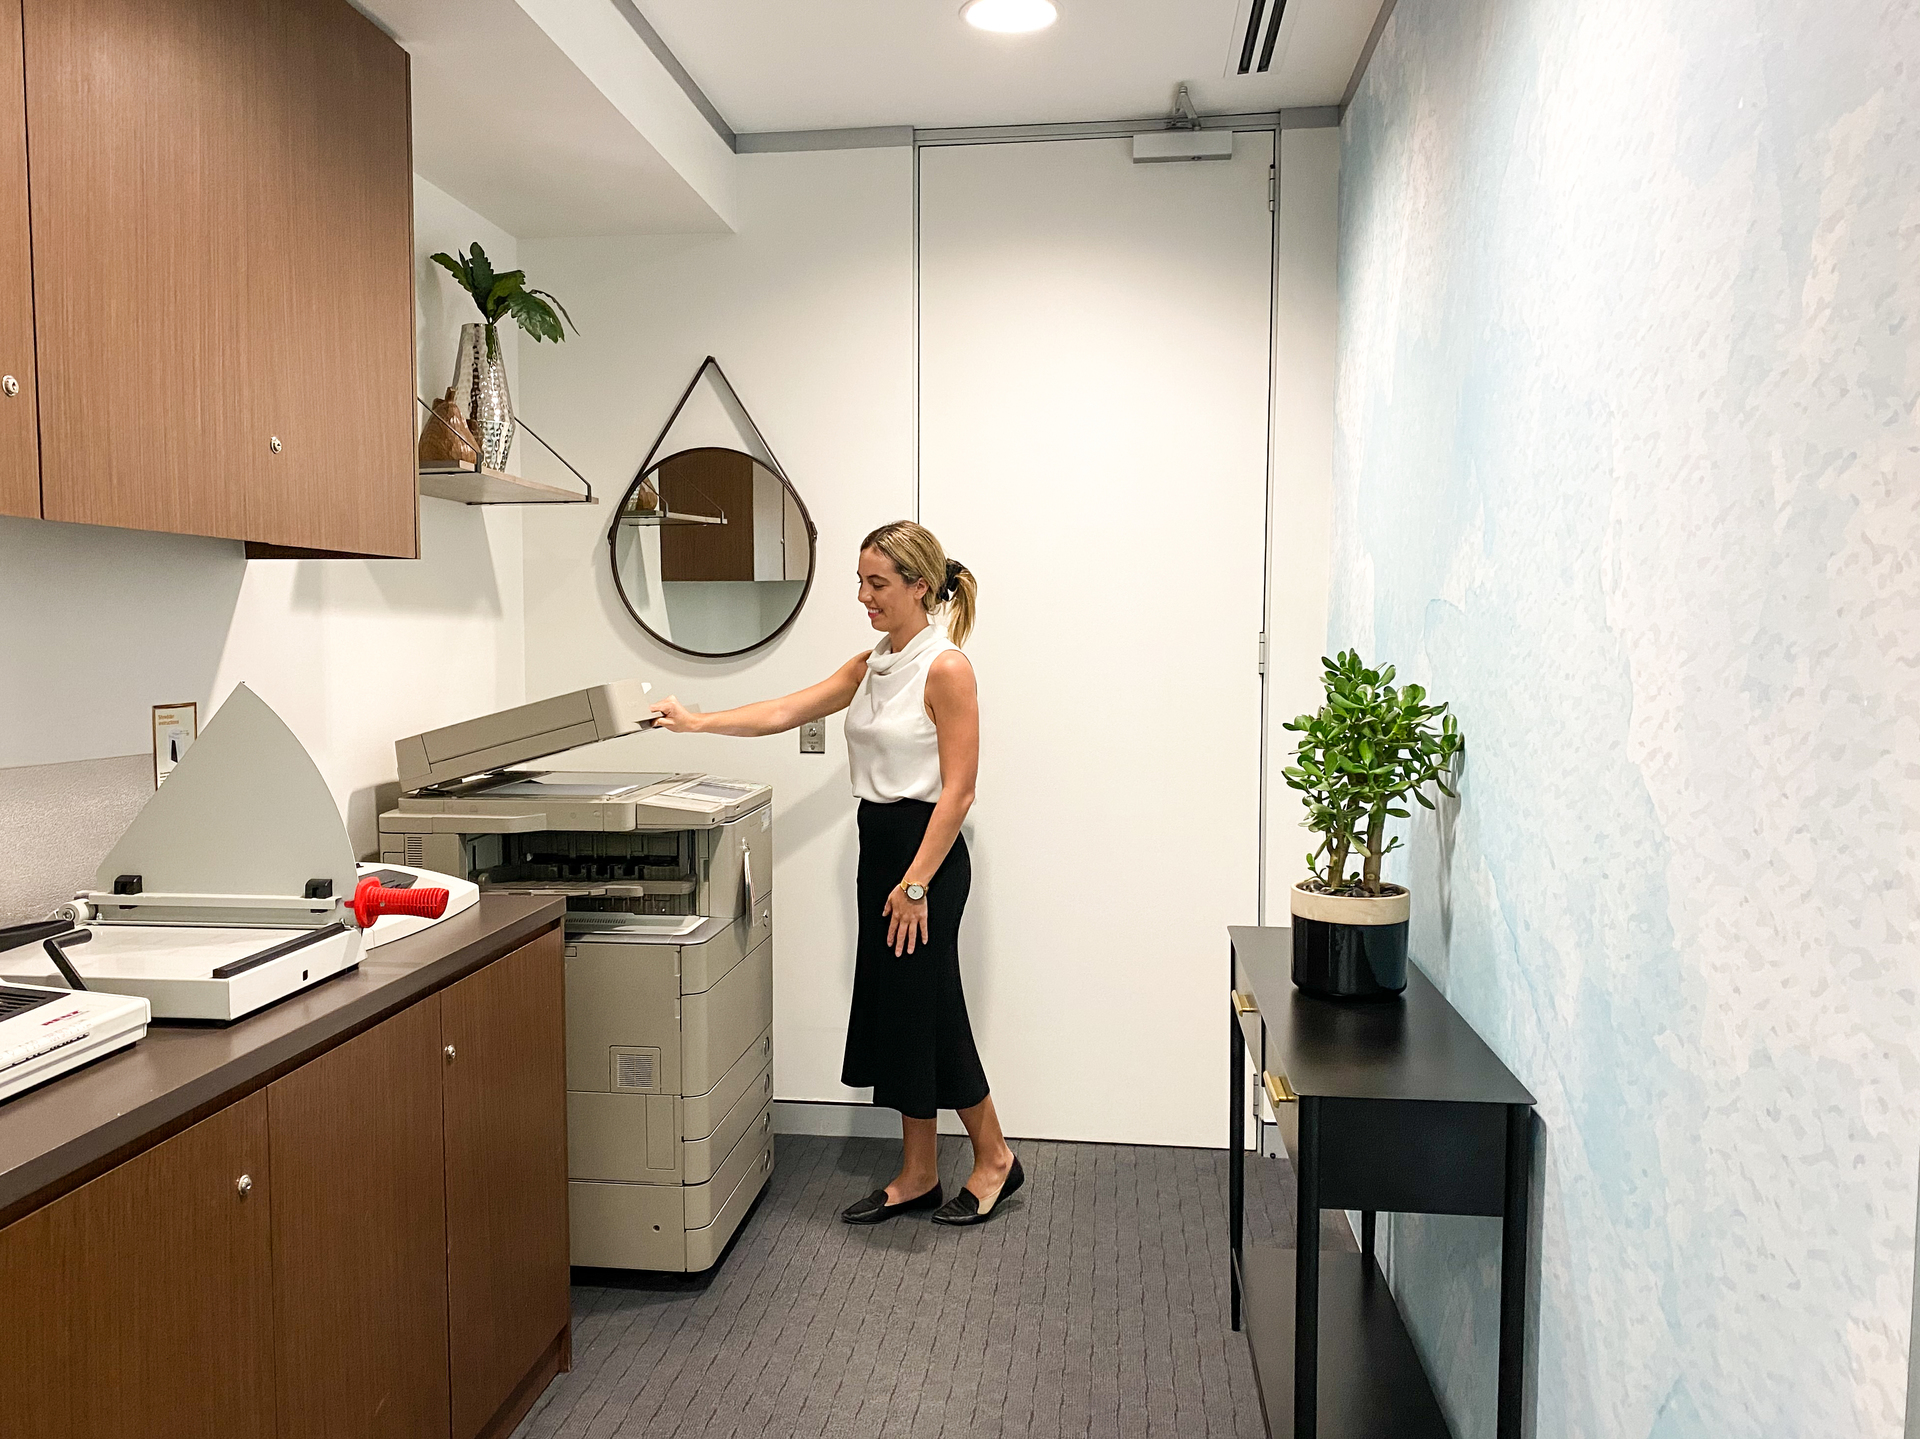 4-person workspace in a superior Eastern Suburbs business address